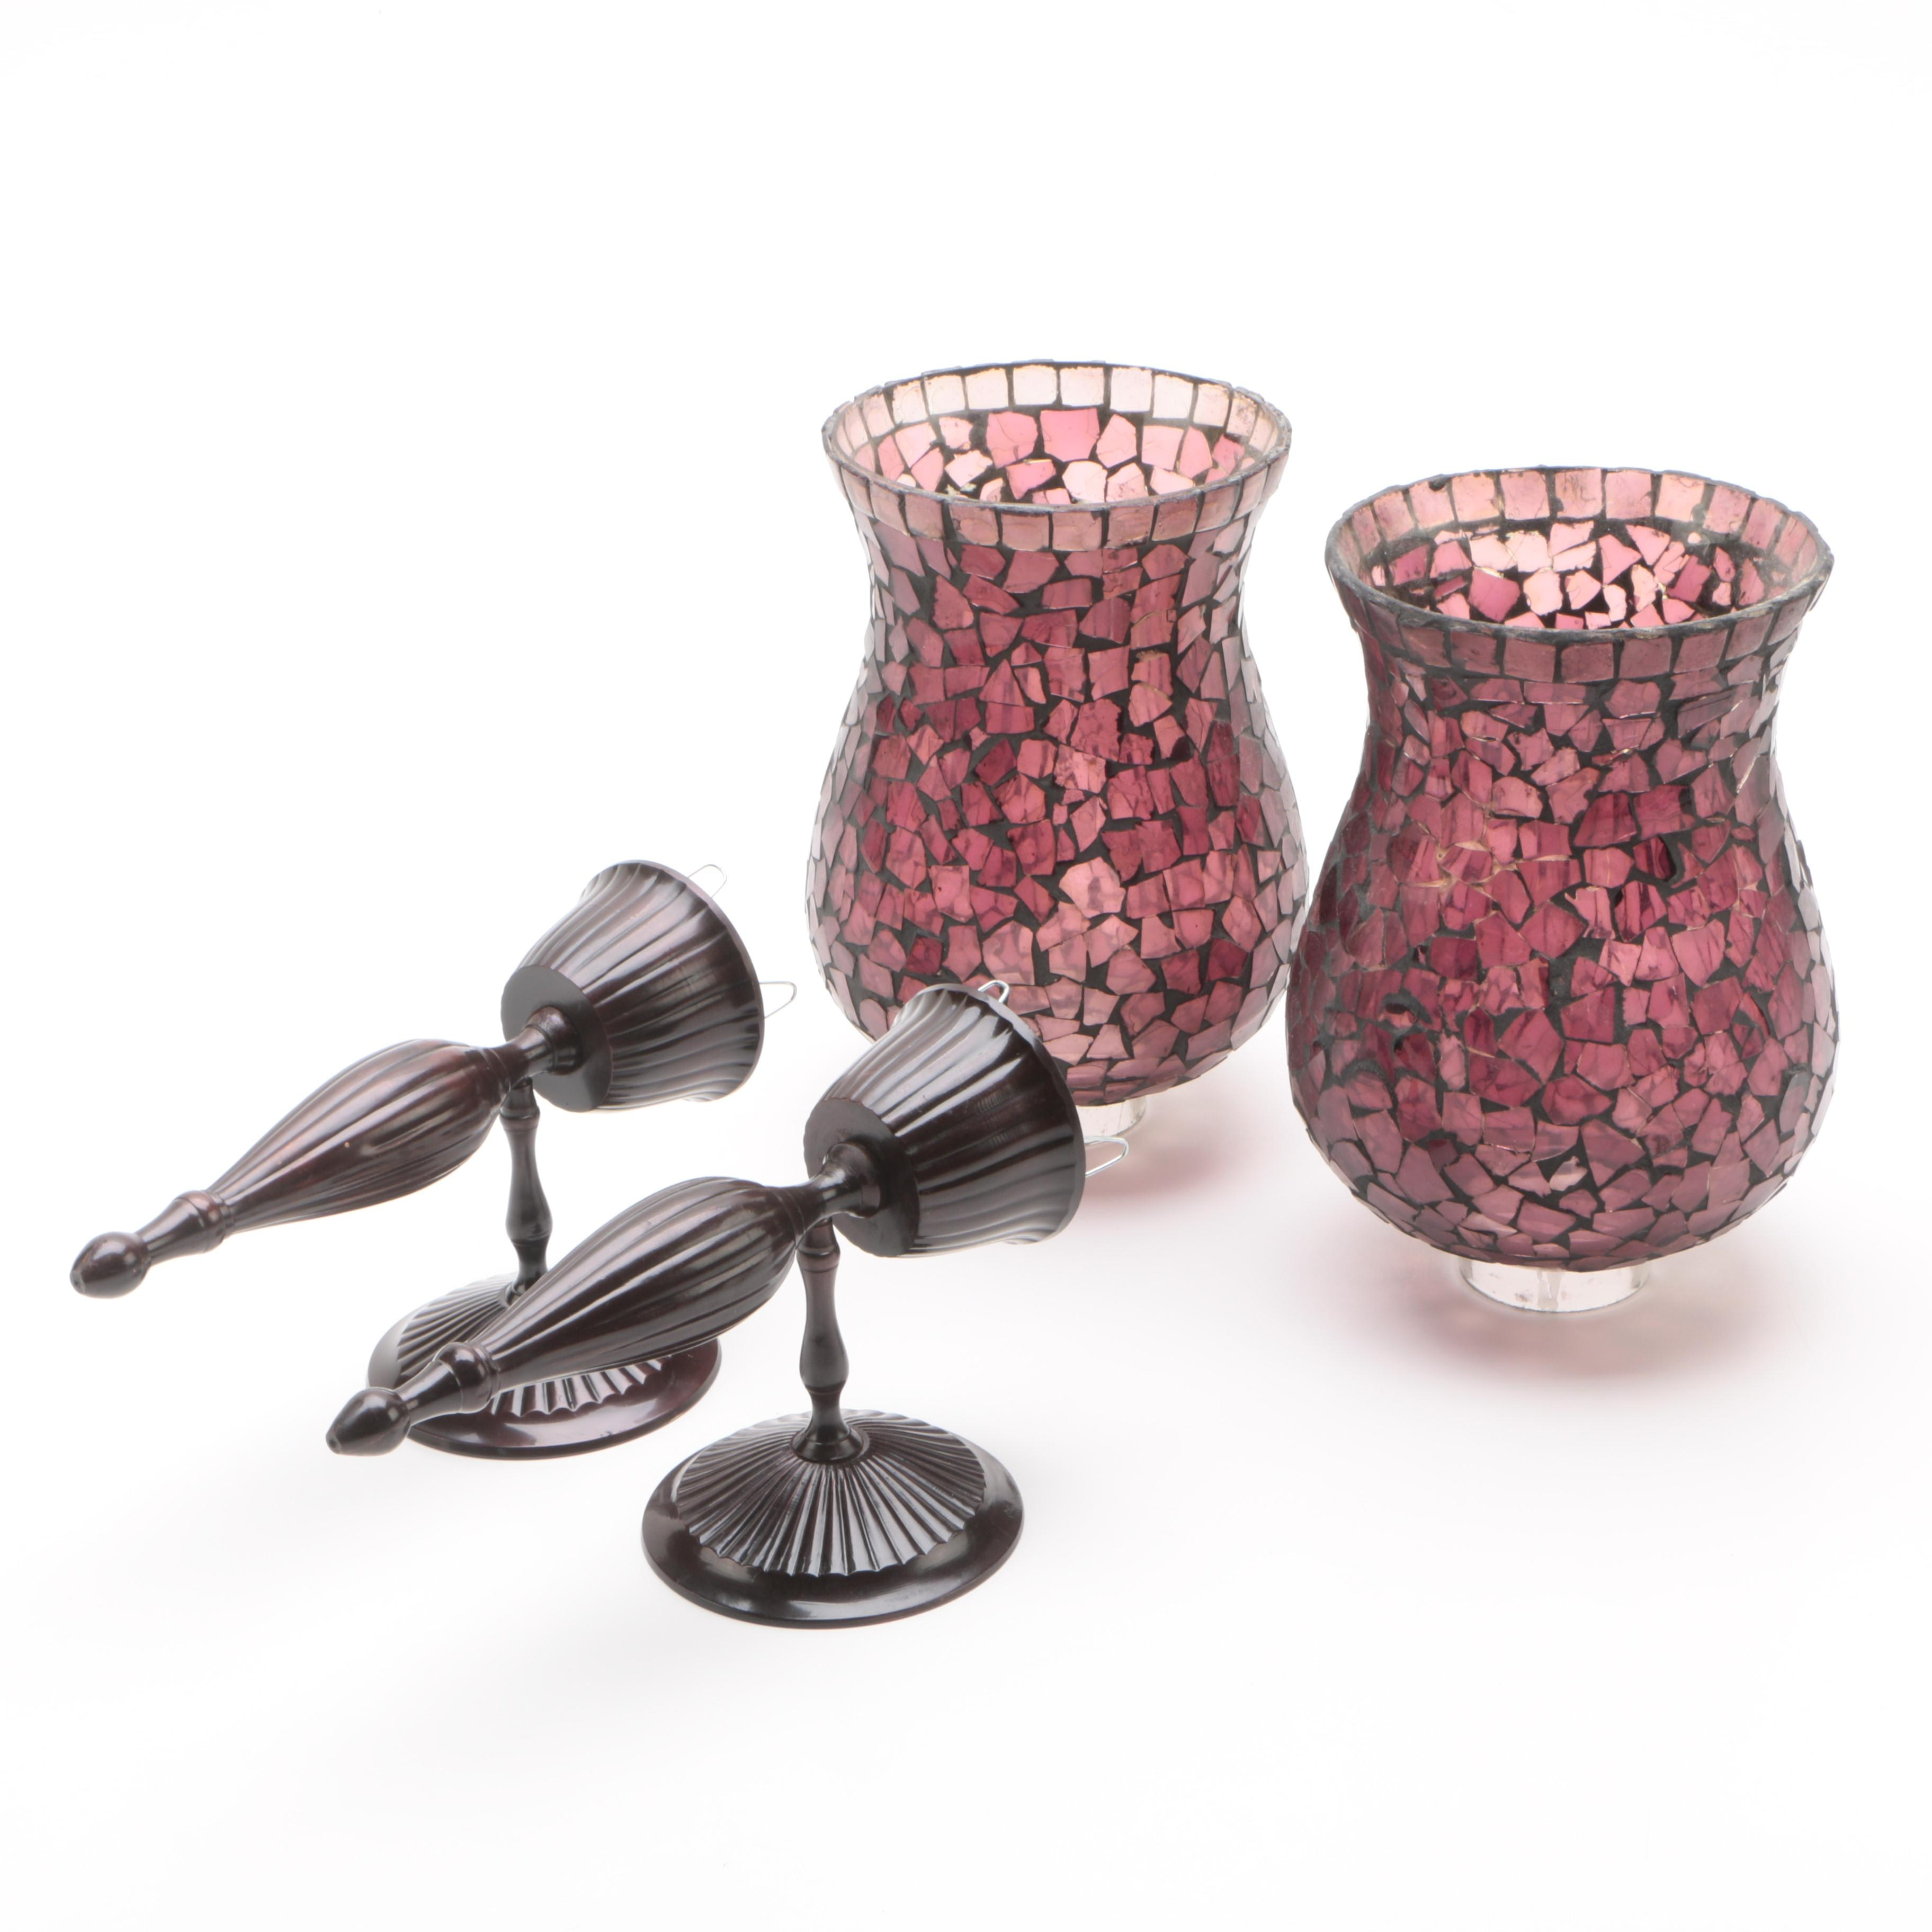 Contemporary Candle Sconces with Mosaic Glass Shades